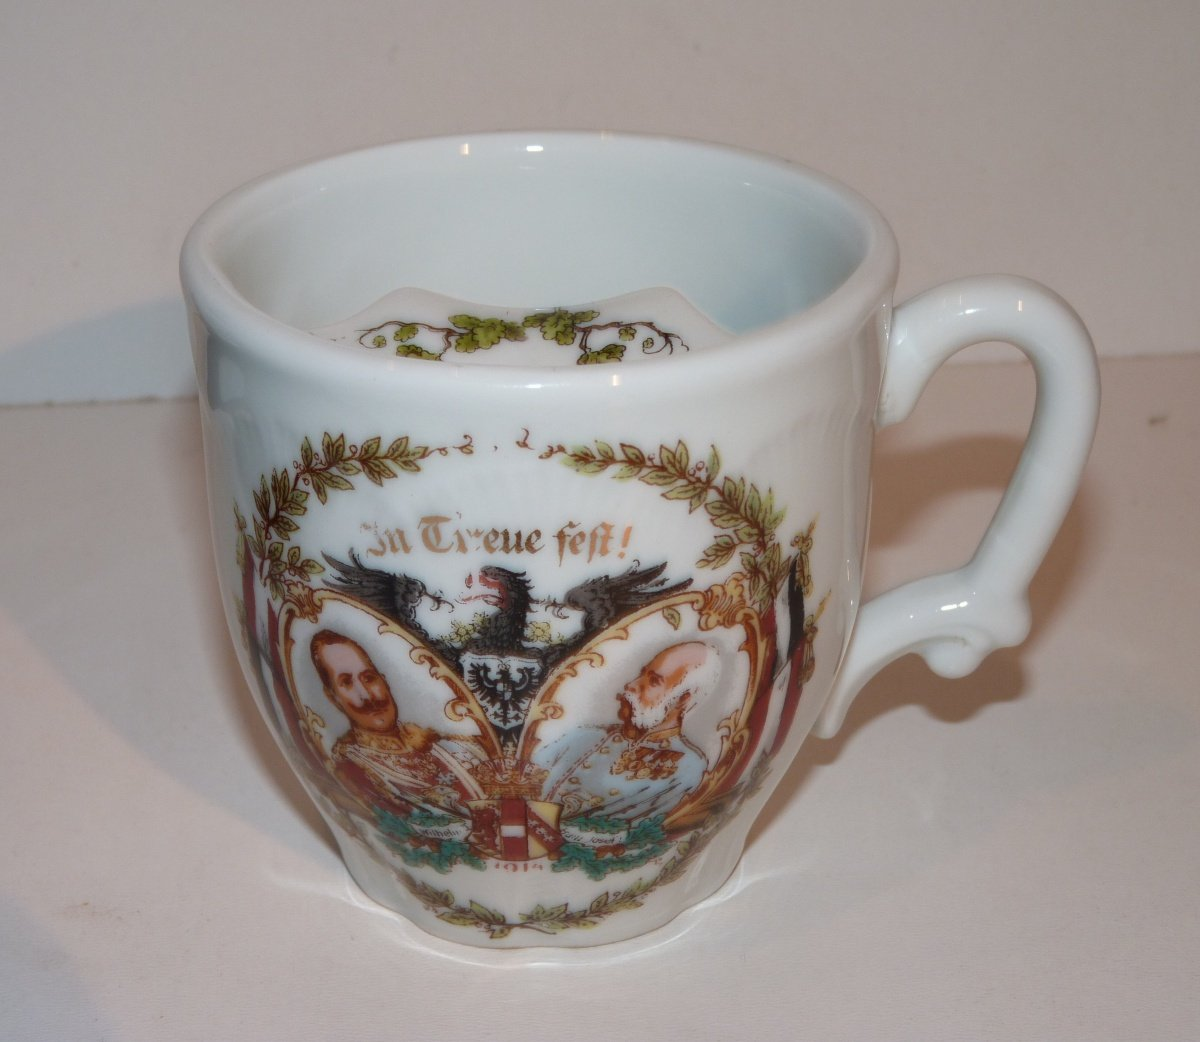 Cup with riser to wet the hair and portraits of emperors